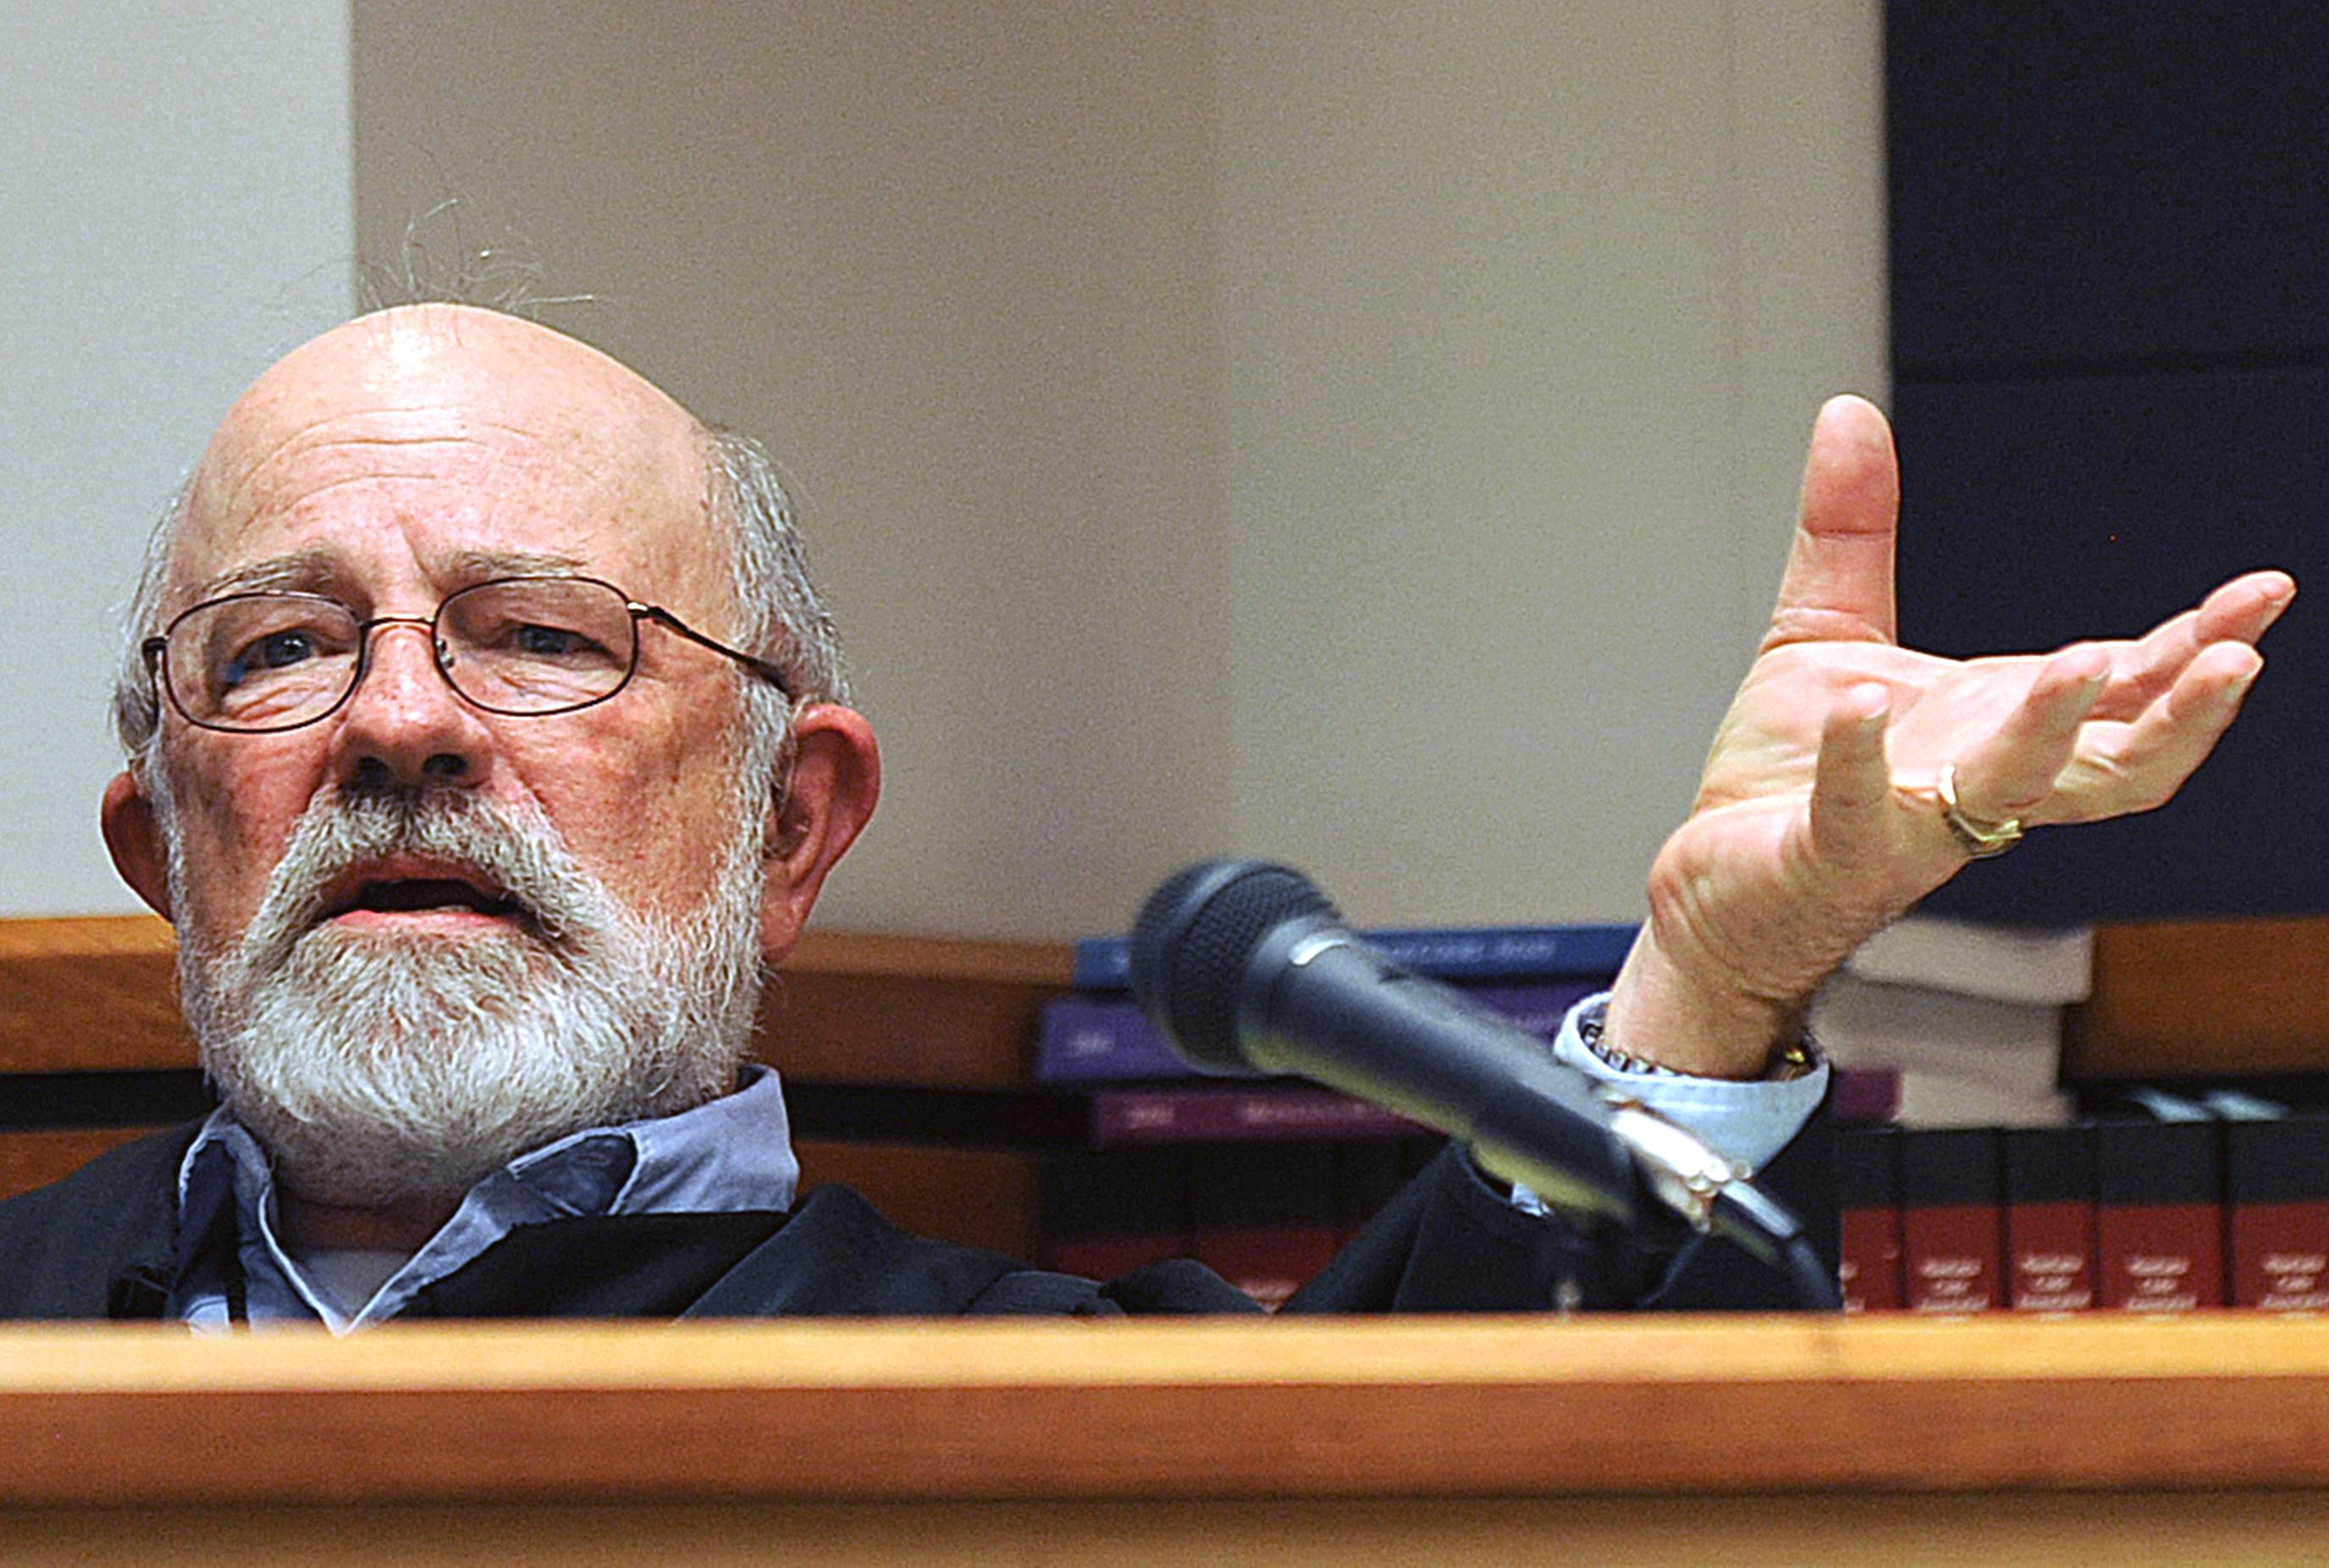 District Judge G. Todd Baugh. The Montana Supreme Court overturned a one-month prison sentence given to former high school teacher Stacey Dean Rambold, who was convicted of raping a 14-year-old student. The decision cited in part the actions of Baugh, who suggested the young victim shared responsibility for her rape because she had some control over the situation.